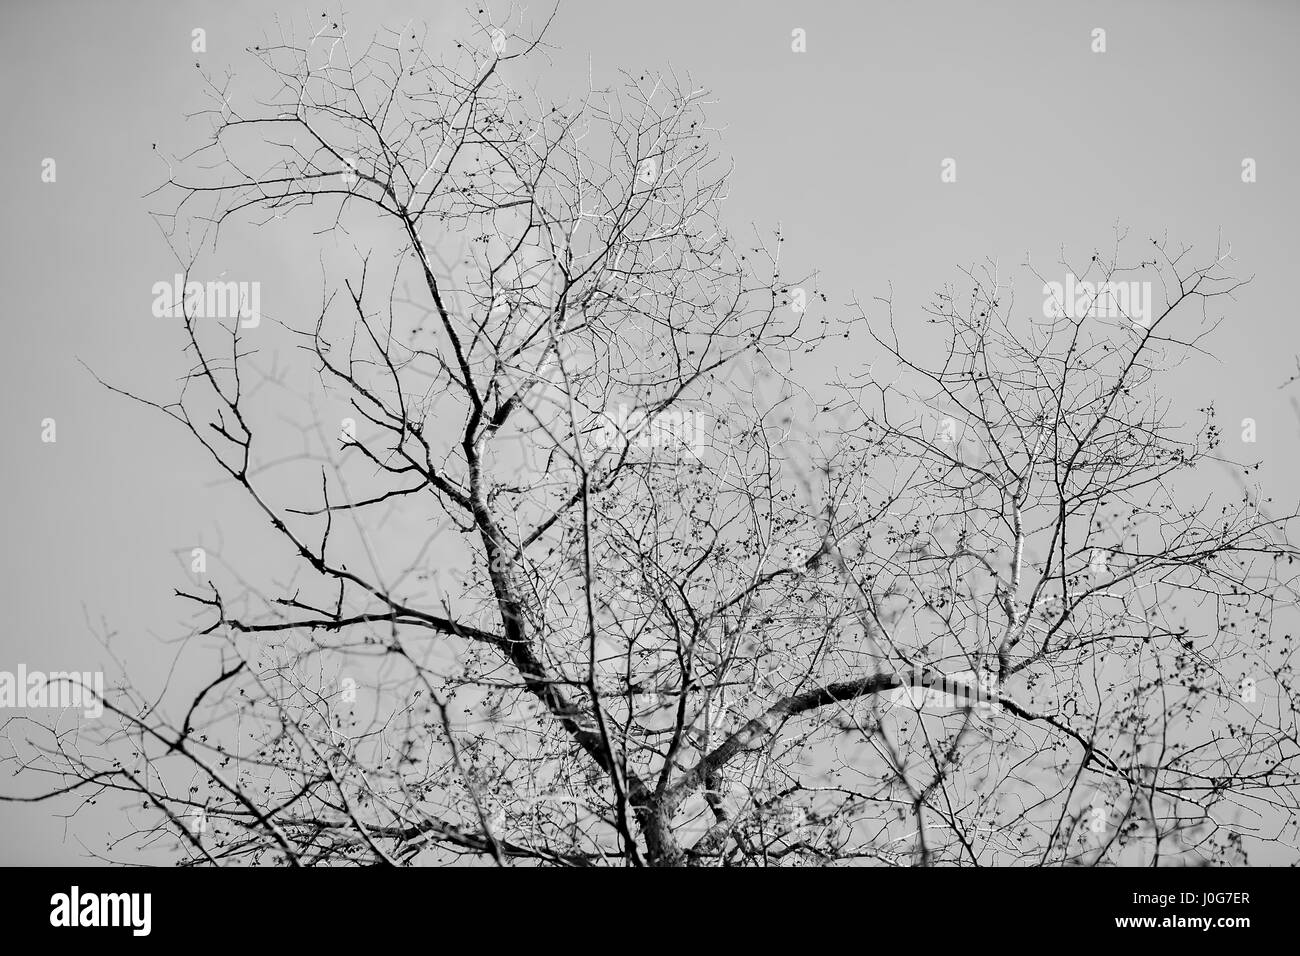 Tree branches silhouette against clear sky  Black and white